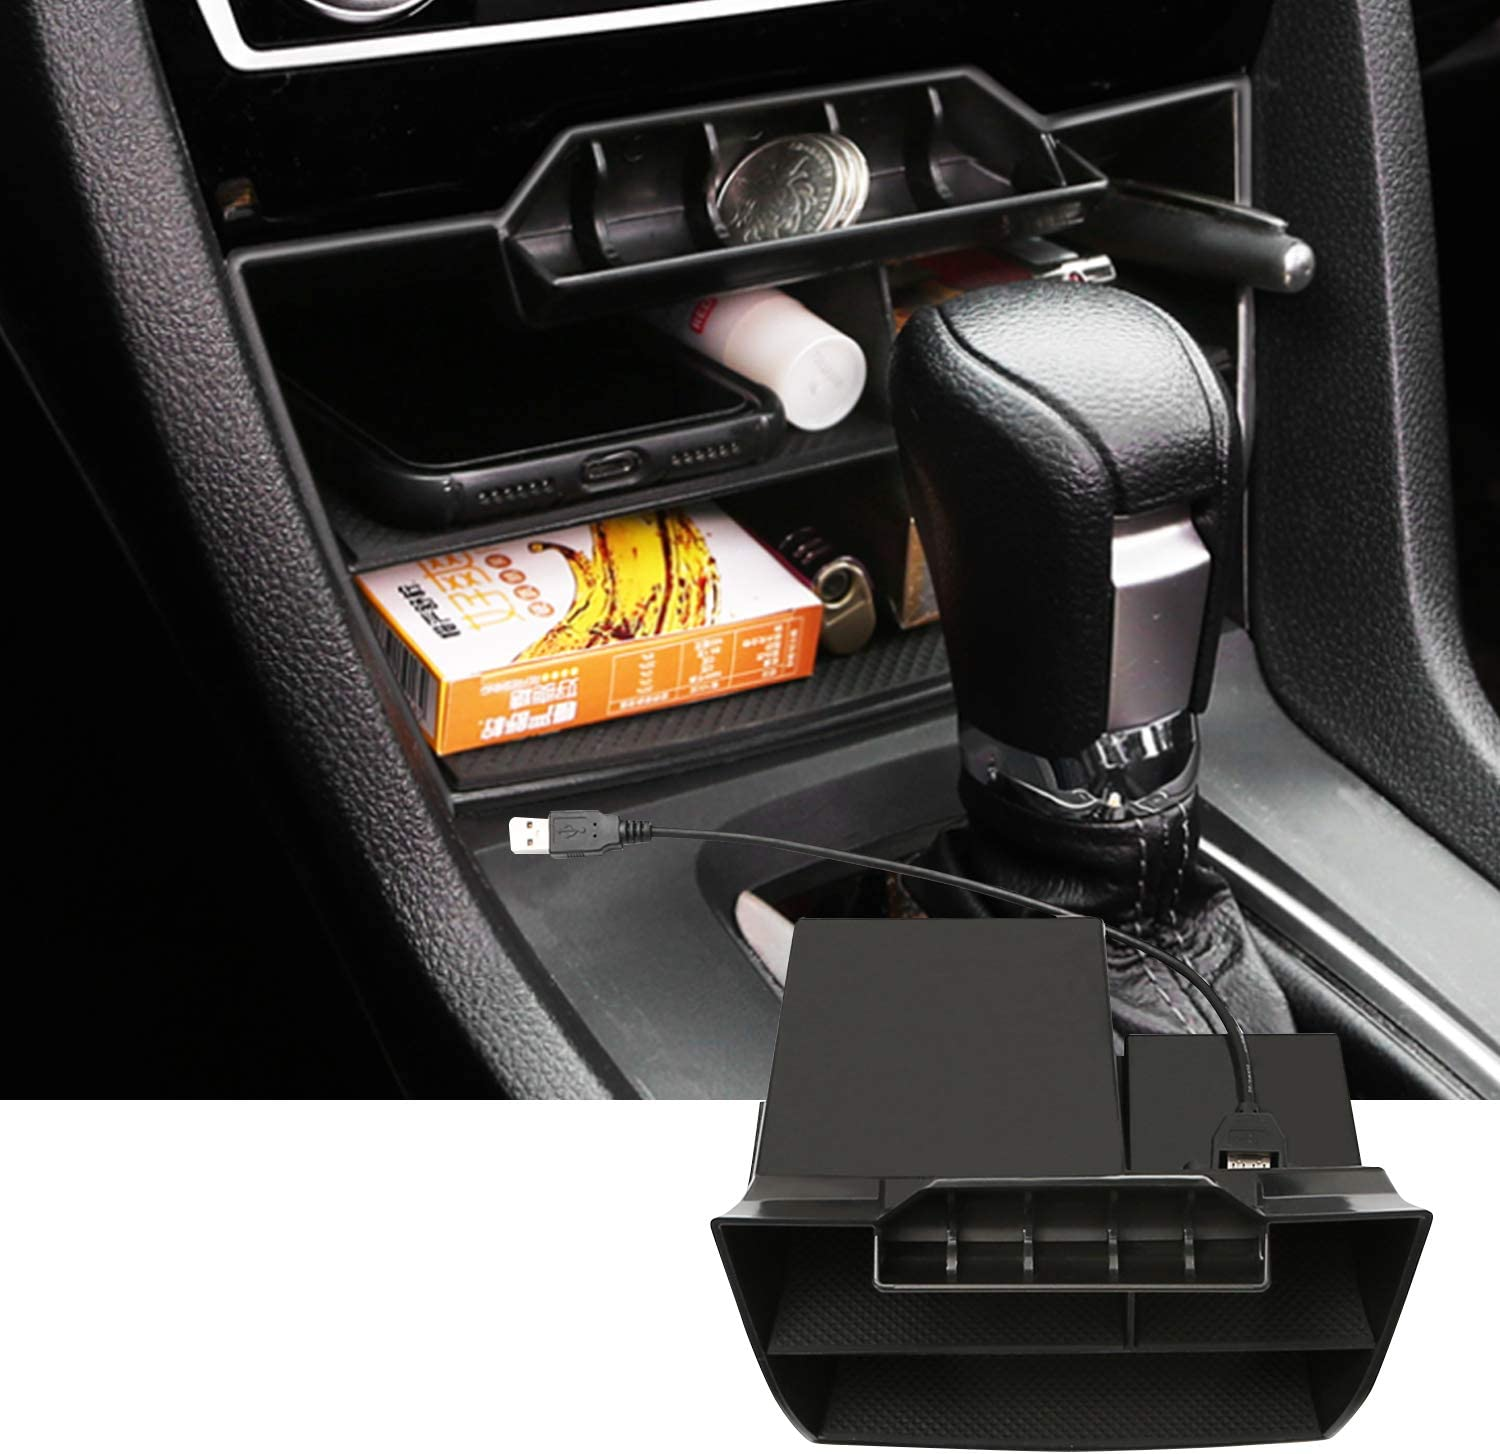 SKTU Center Console Organizer Compatible with 2016-2020 Civic Accessories Insert Honda ABS Black Materials Tray Armrest Secondary Storage Box with USB Hole